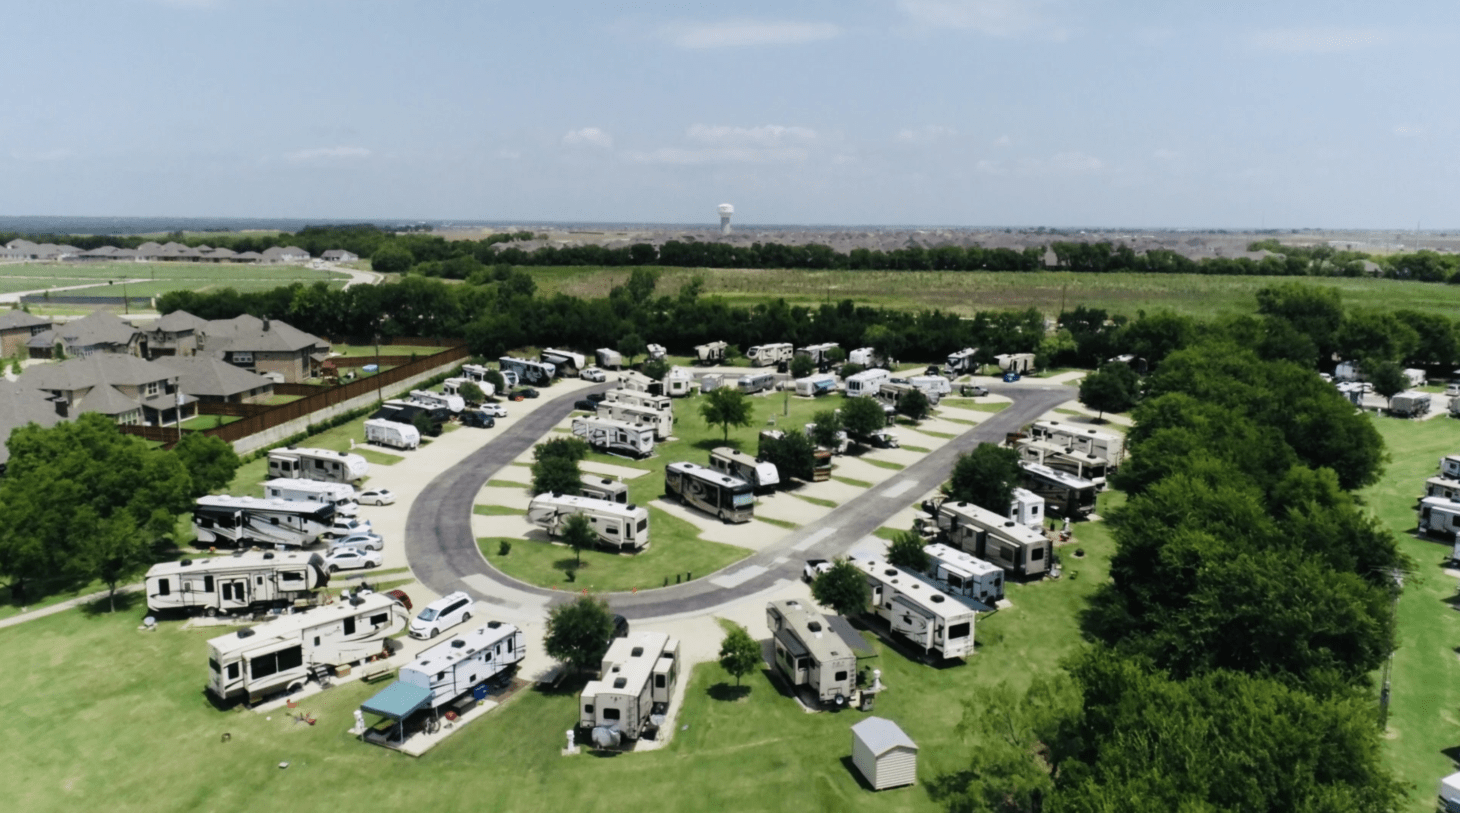 RV parking lot with clubhouse and city in the distance